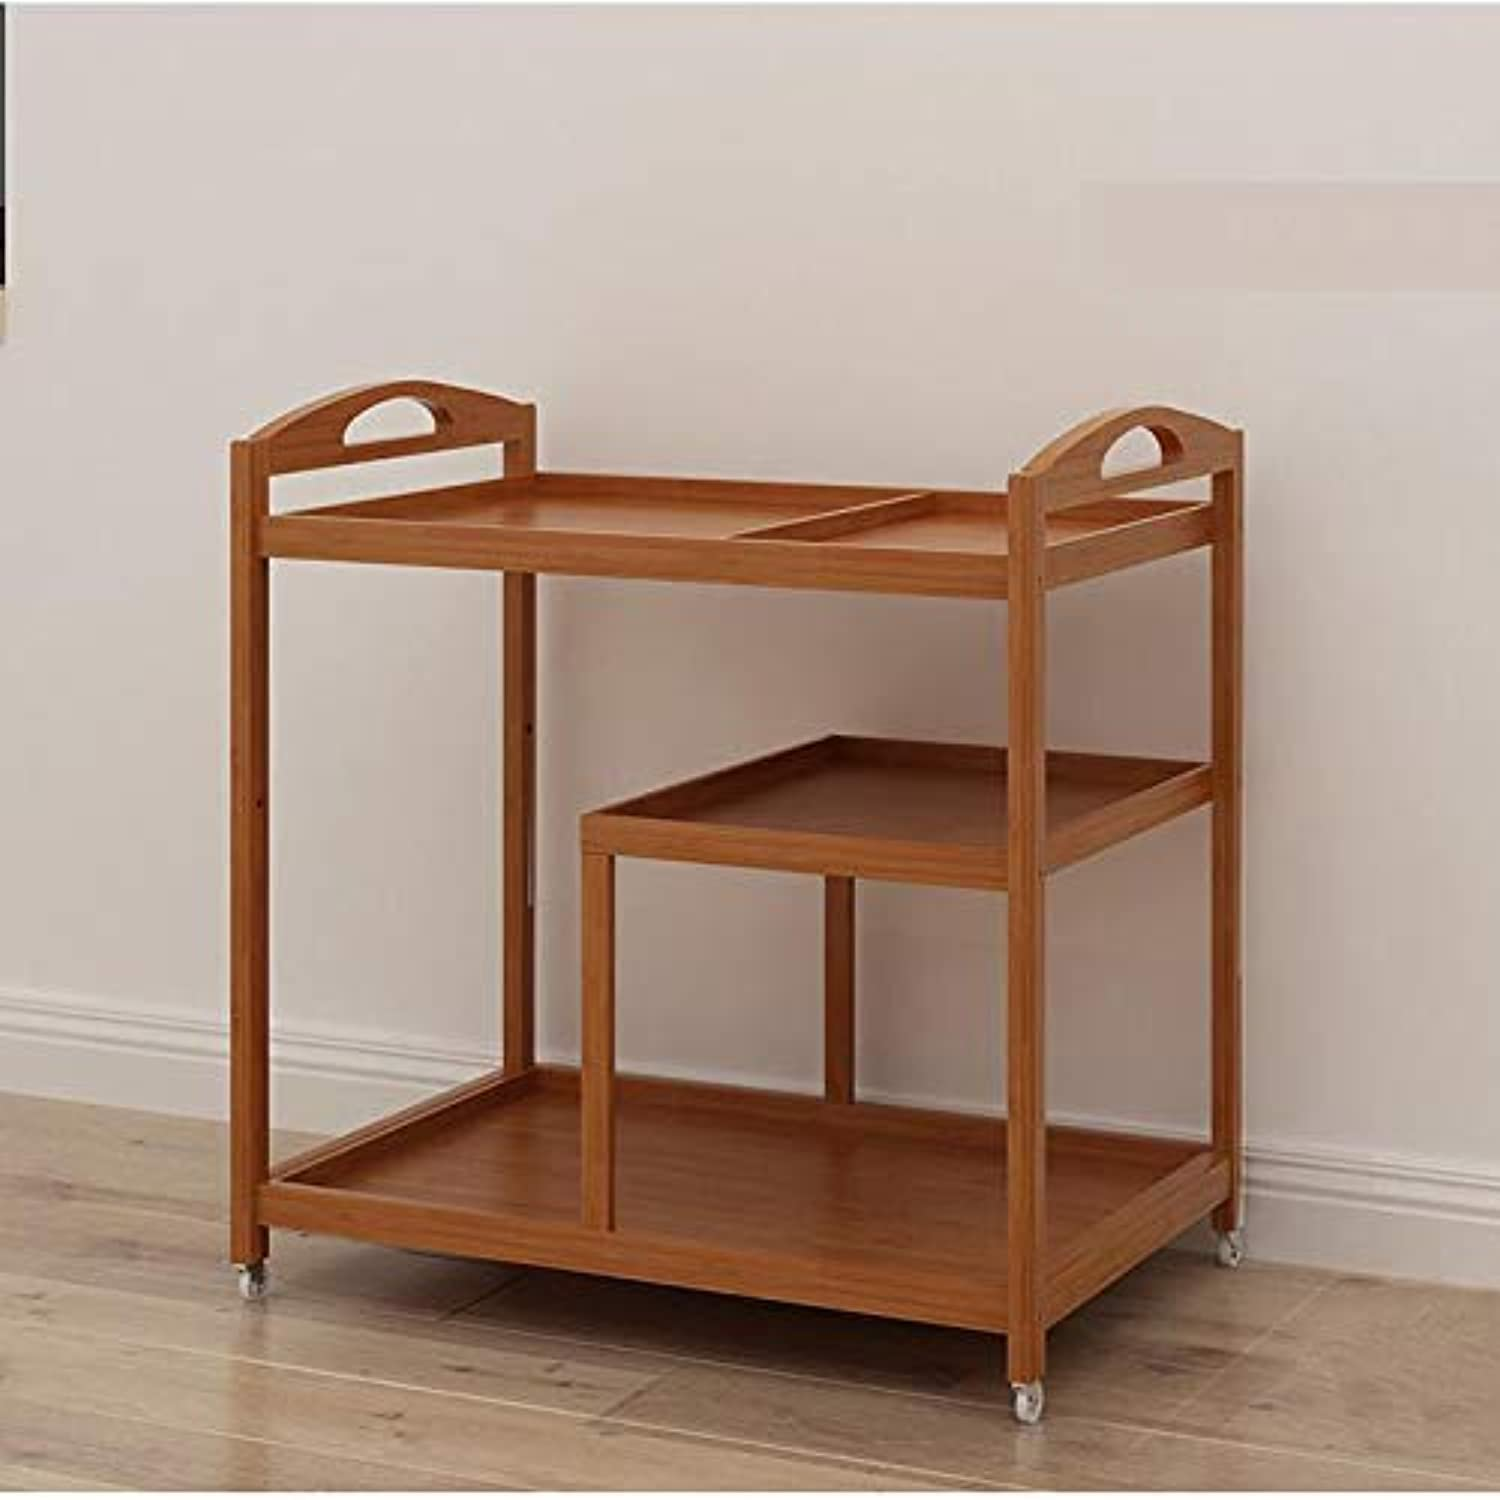 Kitchen Dining Rolling cart Trolley,Cuisine cart Wood 3-Tier Storage Shelves Trolley Simple Removable Serving cart for Kitchen Bar-A 70x42x73cm(28x17x29inch)